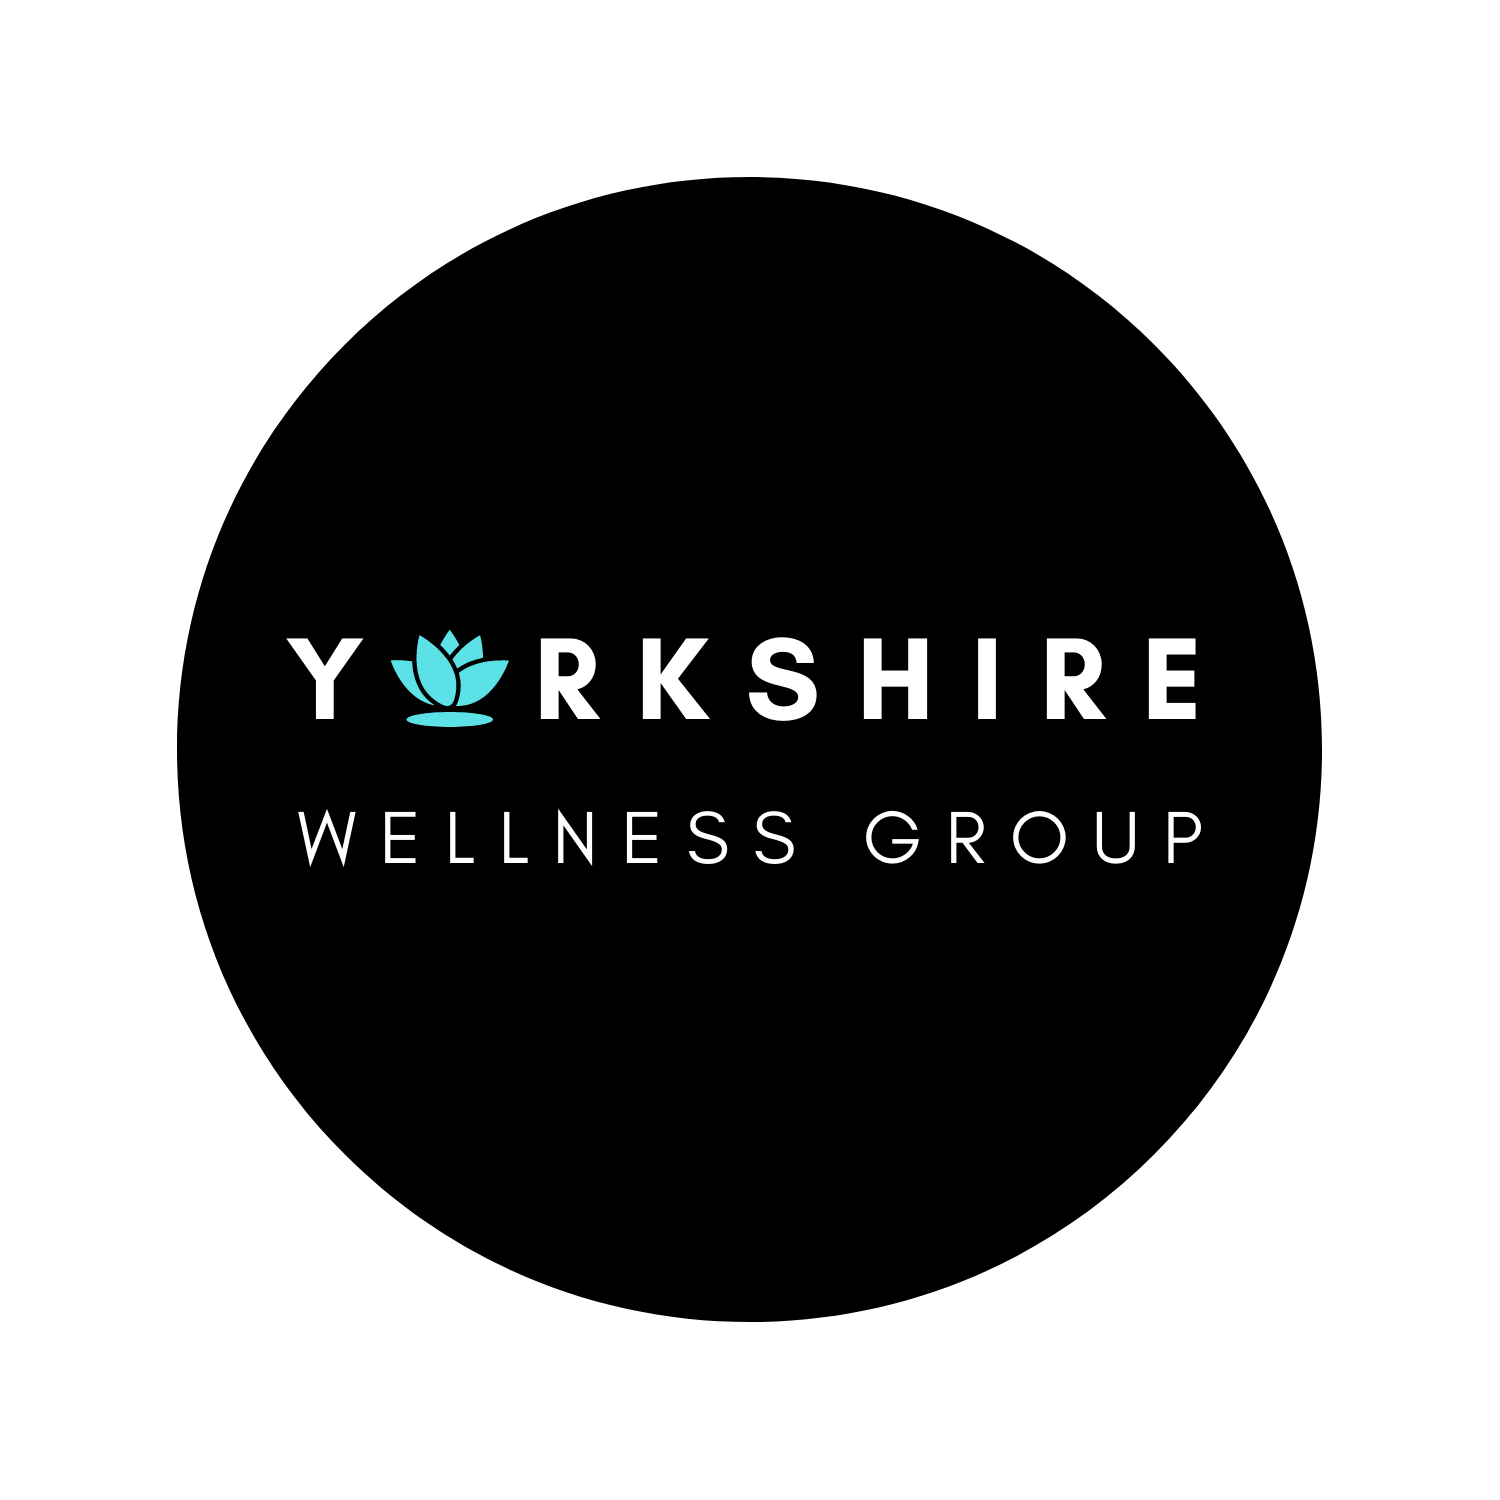 Yorkshire Wellness Group, Corp – telehealth and primary care services